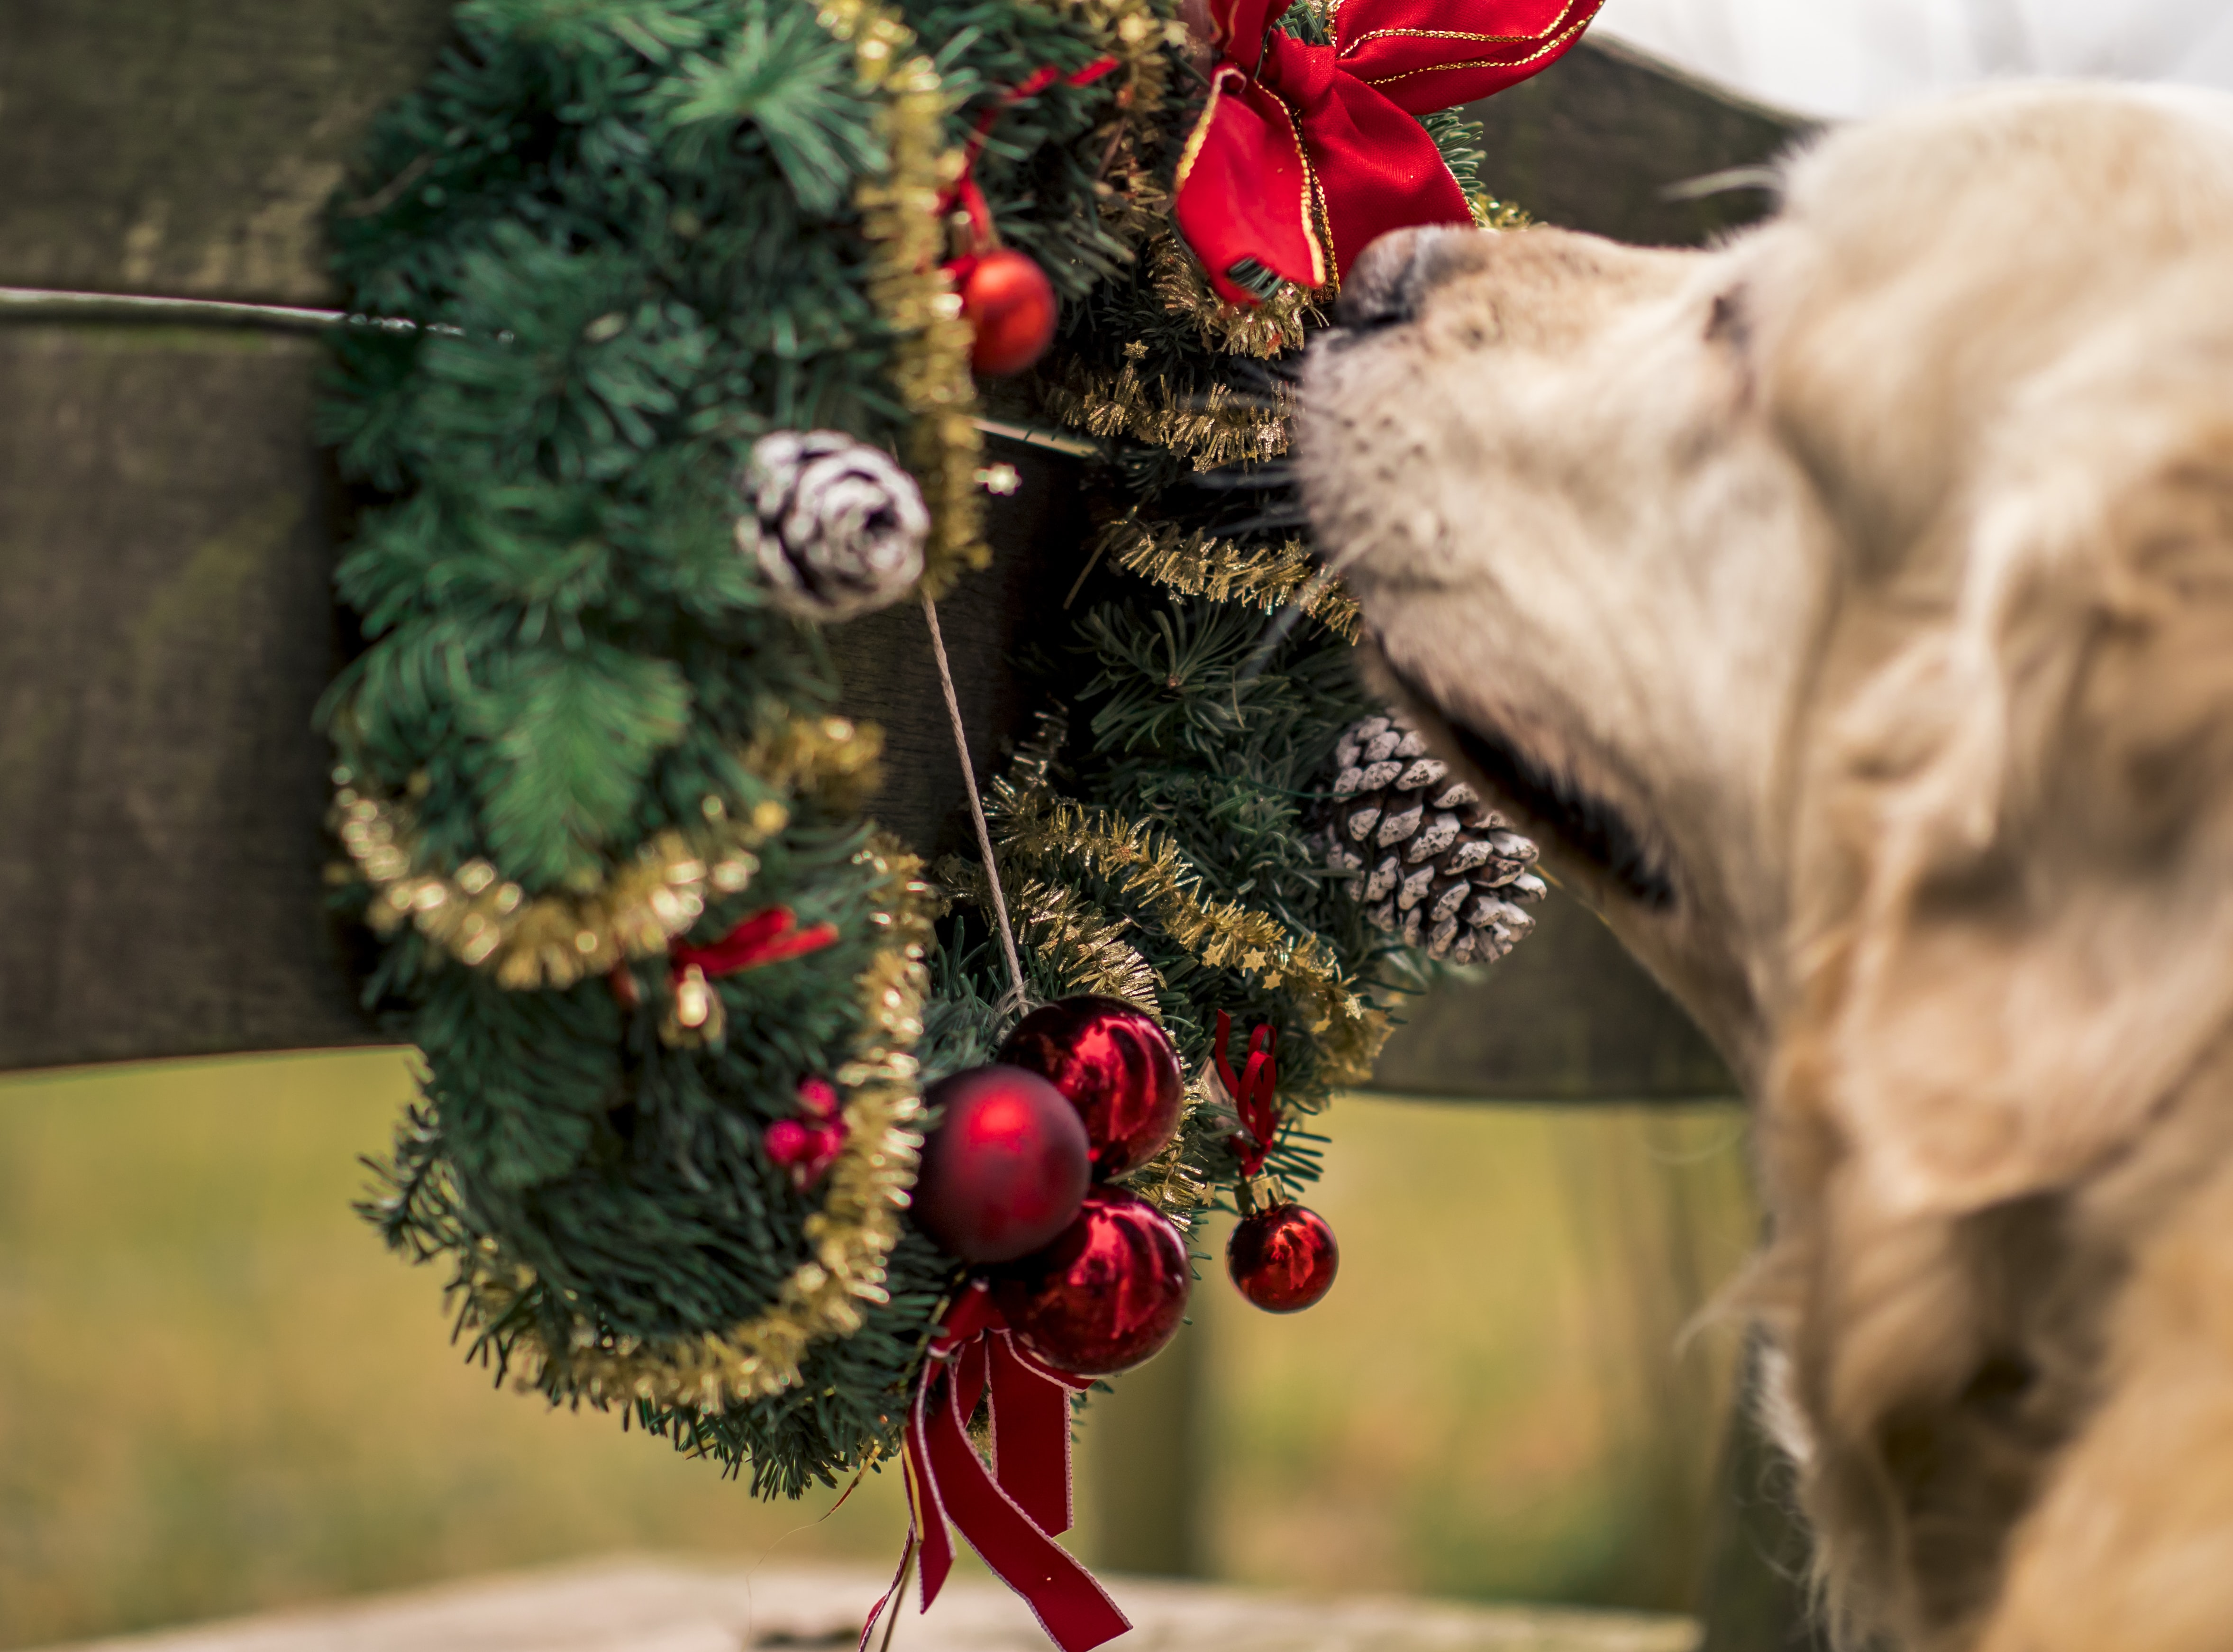 dog smelling garland wreath